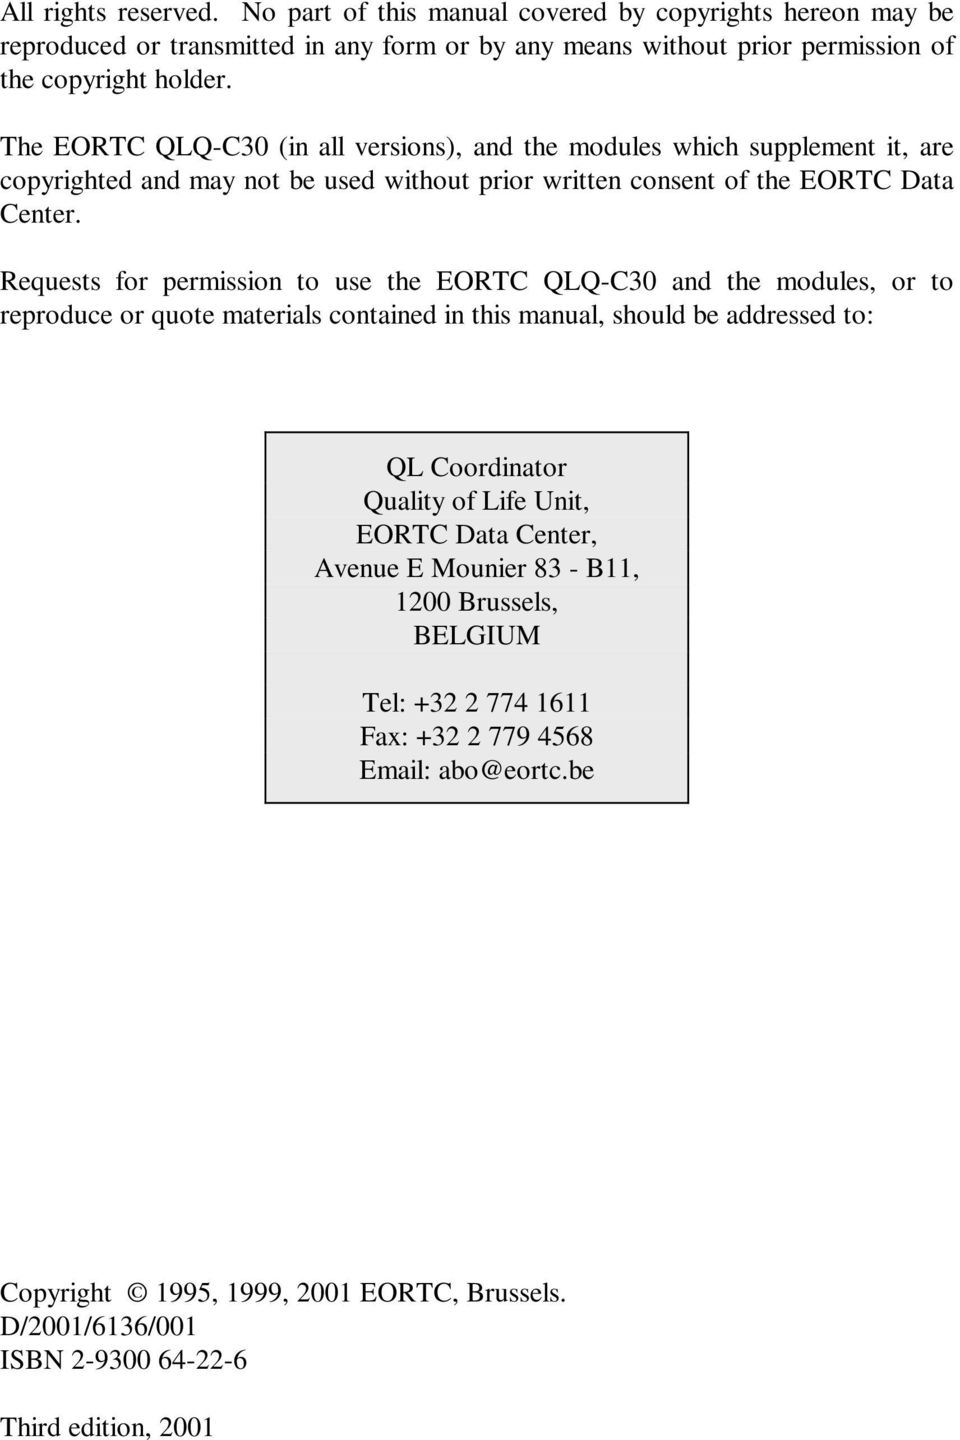 Requests for permission to use the EORTC QLQ-C30 and the modules, or to reproduce or quote materials contained in this manual, should be addressed to: QL Coordinator Quality of Life Unit,